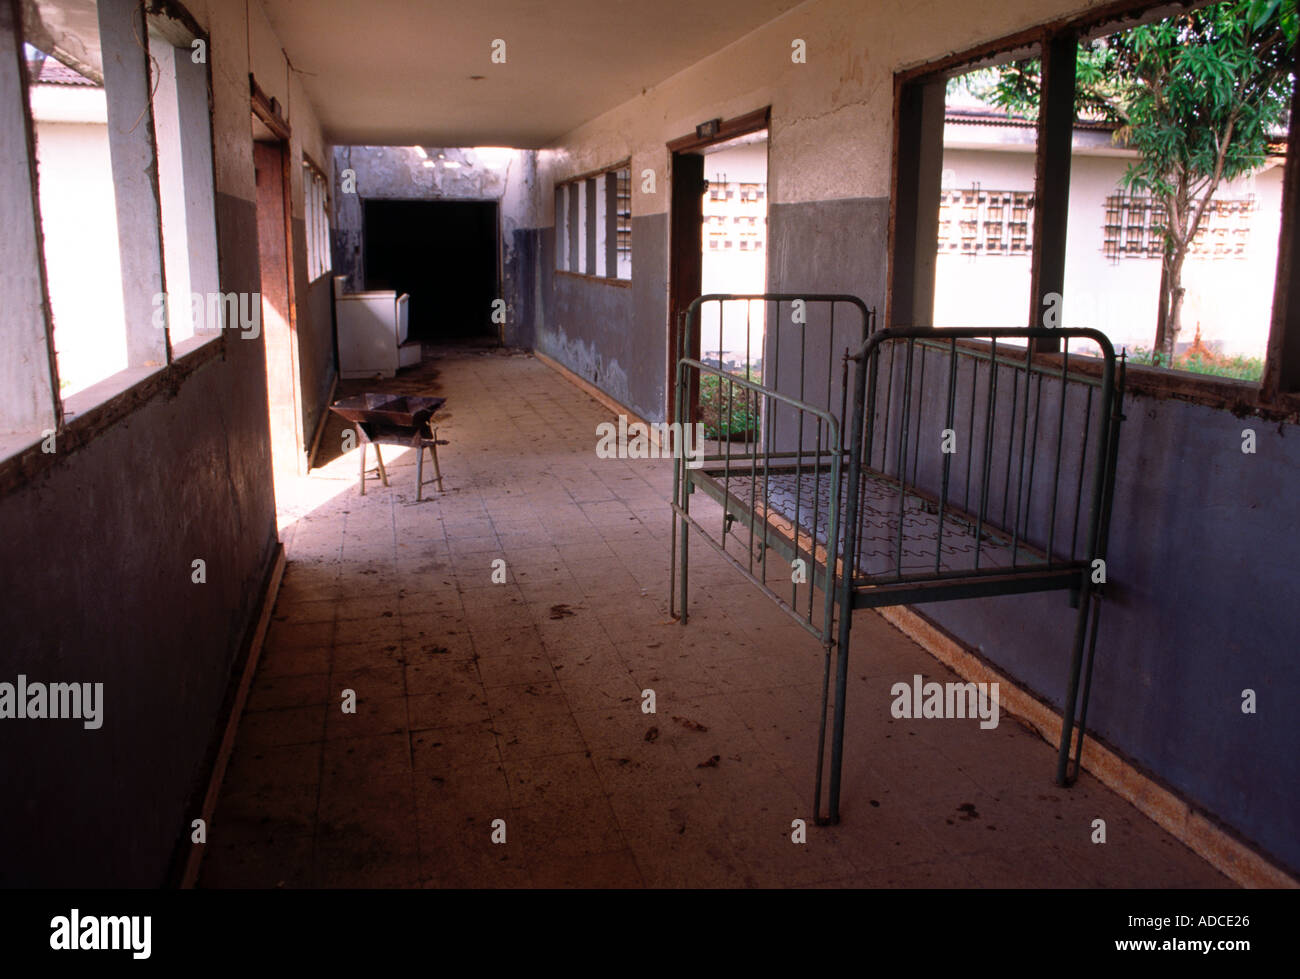 Hallway in a looted hospital in the town of Zwedru Liberia - Stock Image